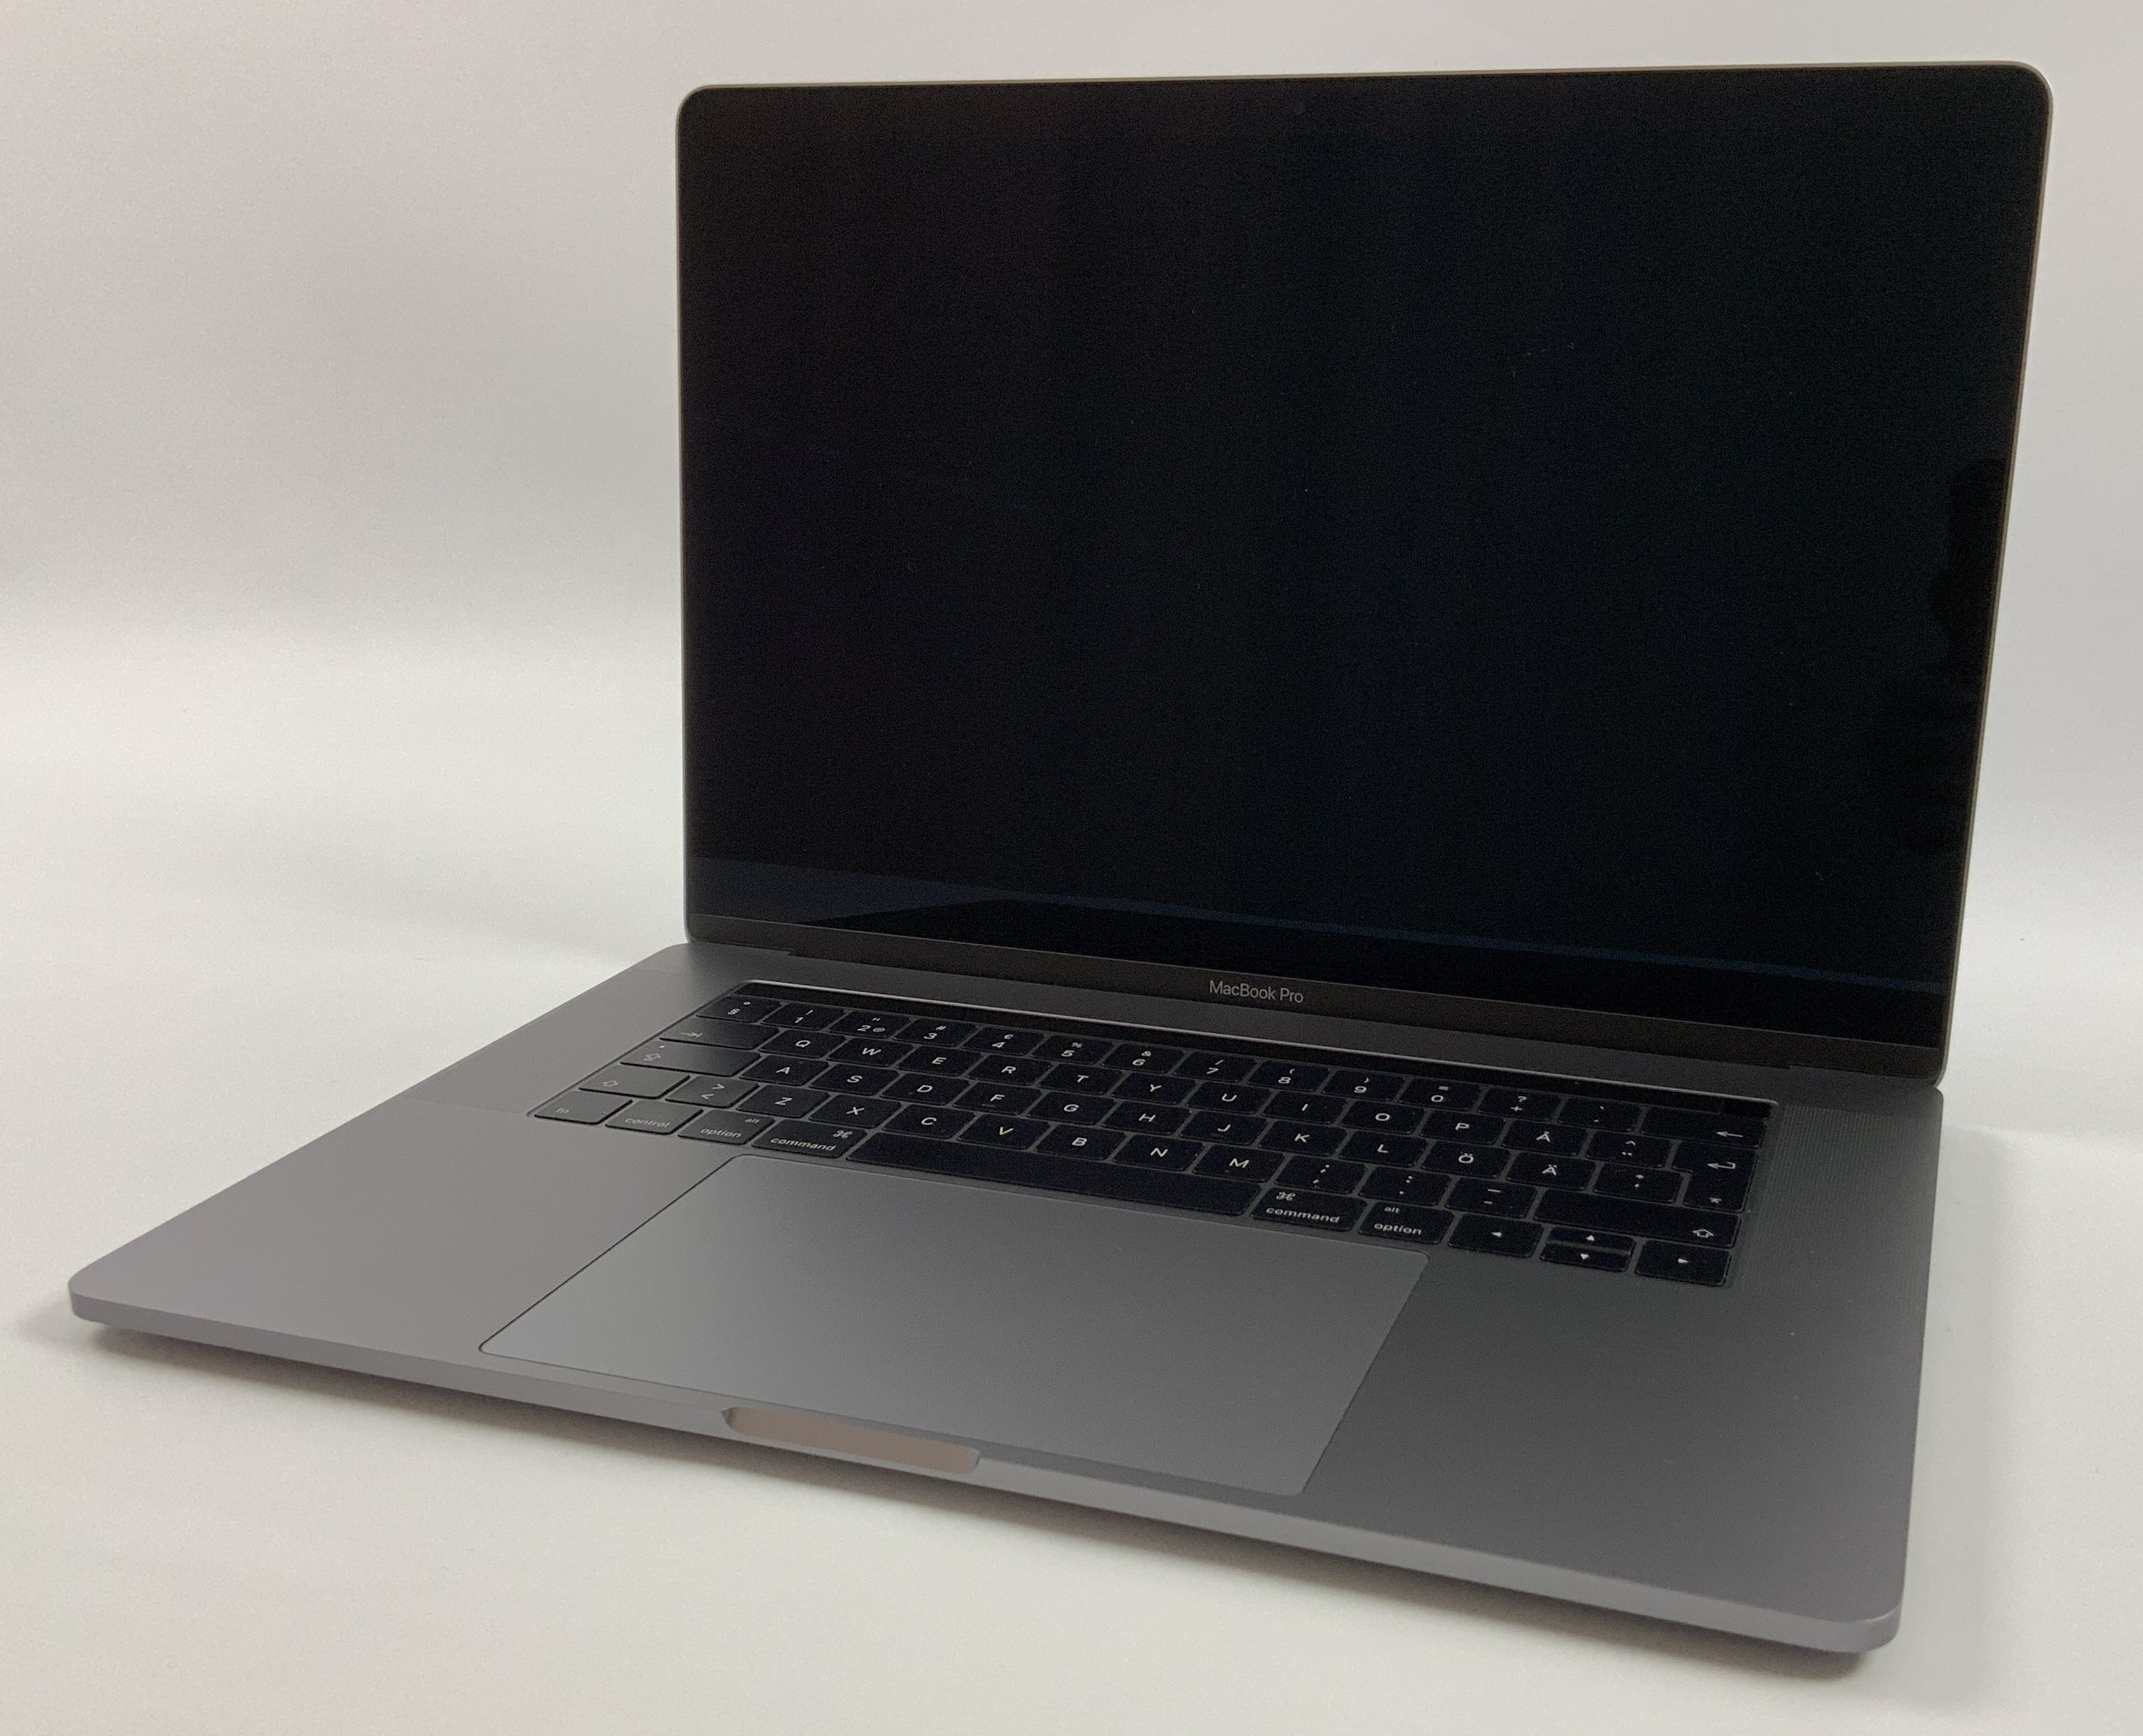 "MacBook Pro 15"" Touch Bar Late 2016 (Intel Quad-Core i7 2.9 GHz 16 GB RAM 512 GB SSD), Space Gray, Intel Quad-Core i7 2.9 GHz, 16 GB RAM, 512 GB SSD, image 1"